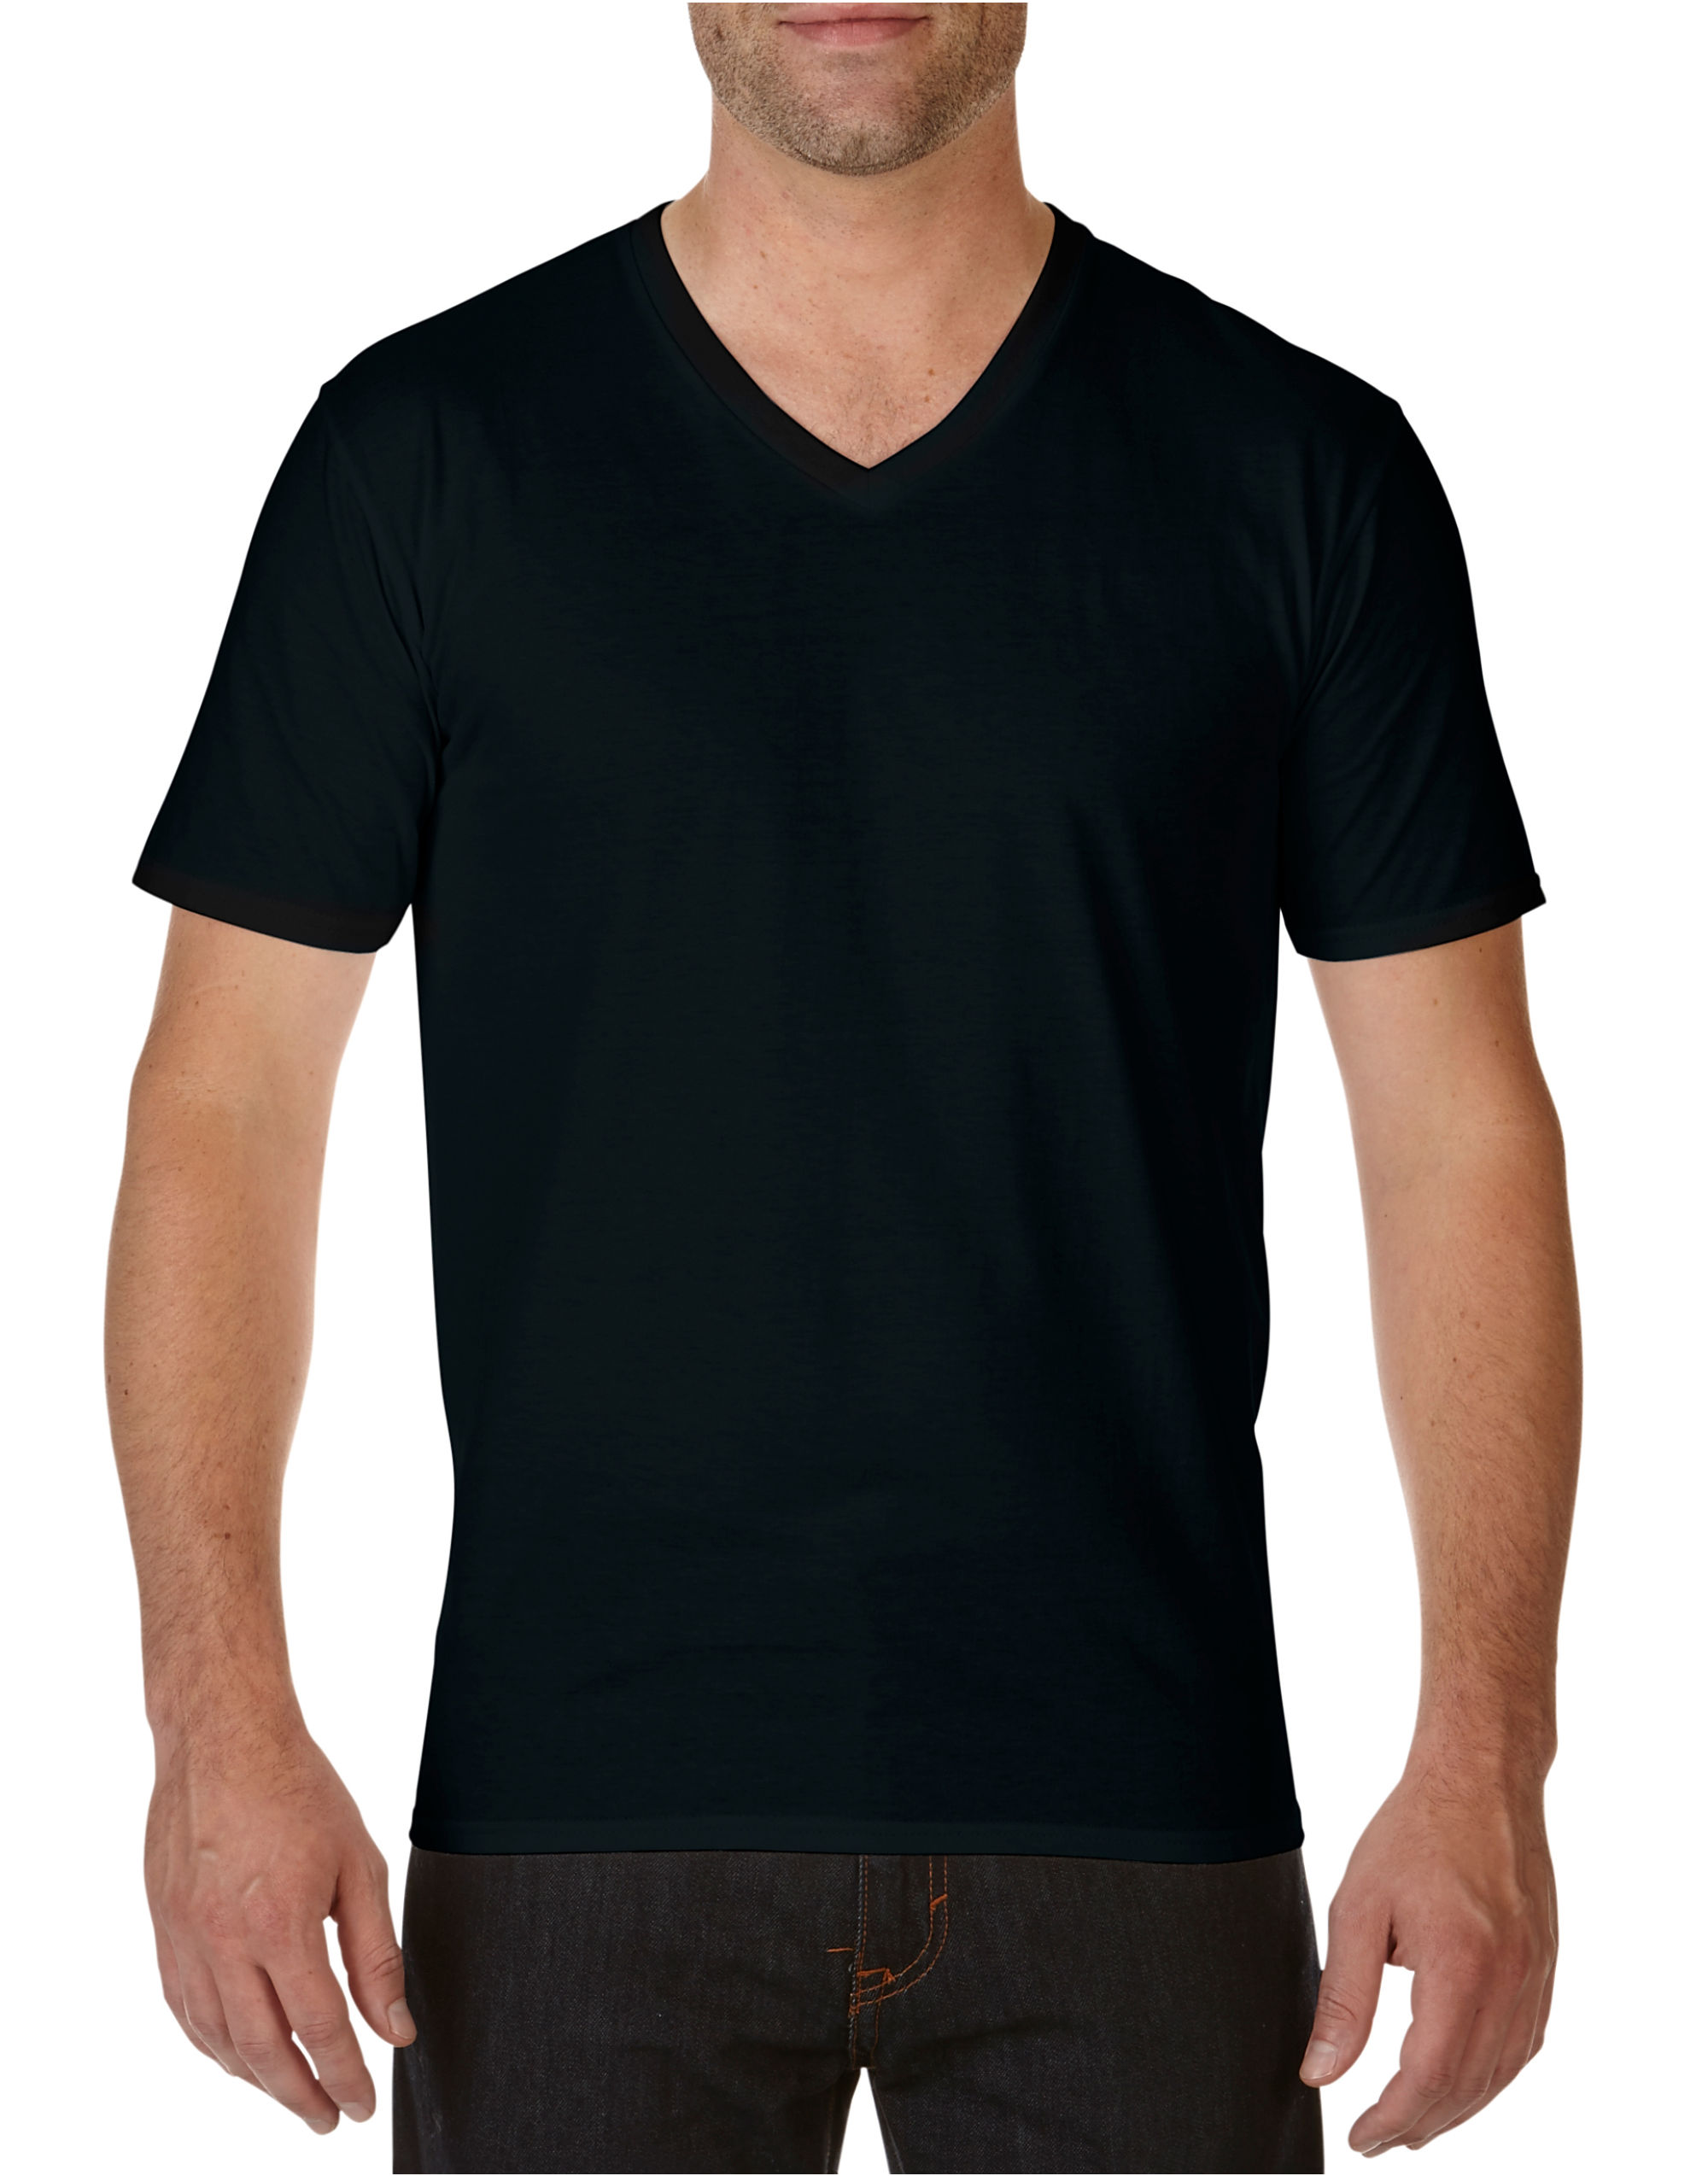 Gildan Premium Cotton V Neck Tee